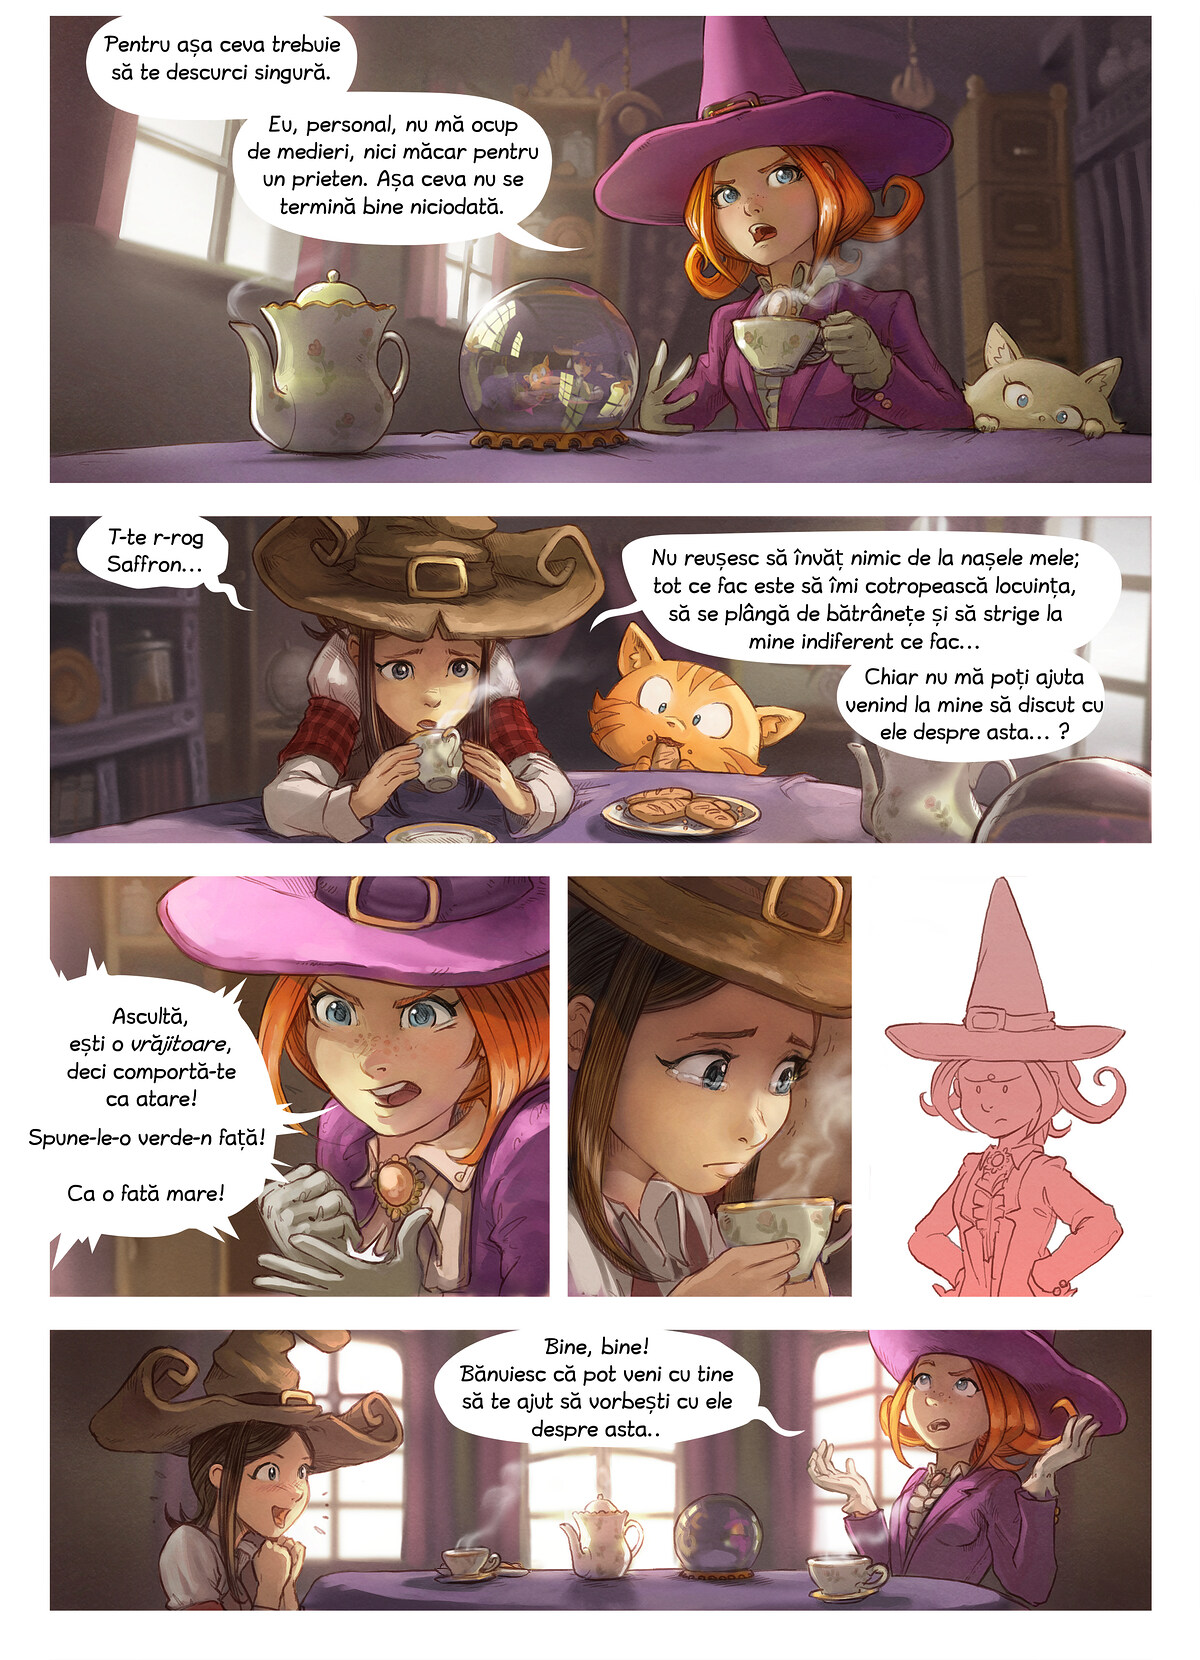 A webcomic page of Pepper&Carrot, episode 16 [ro], page 2